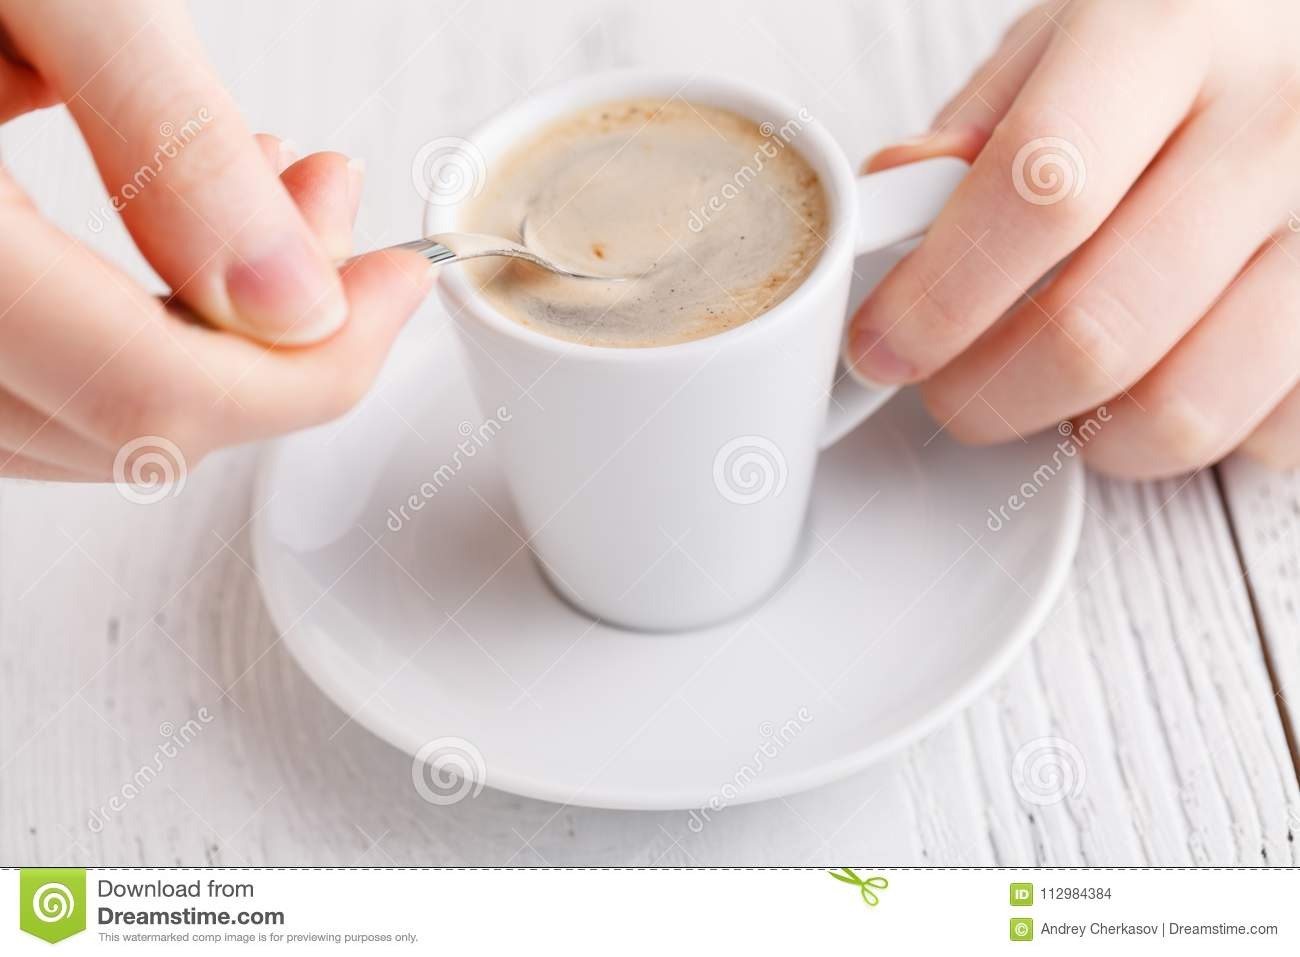 Hand holding a cup of coffee